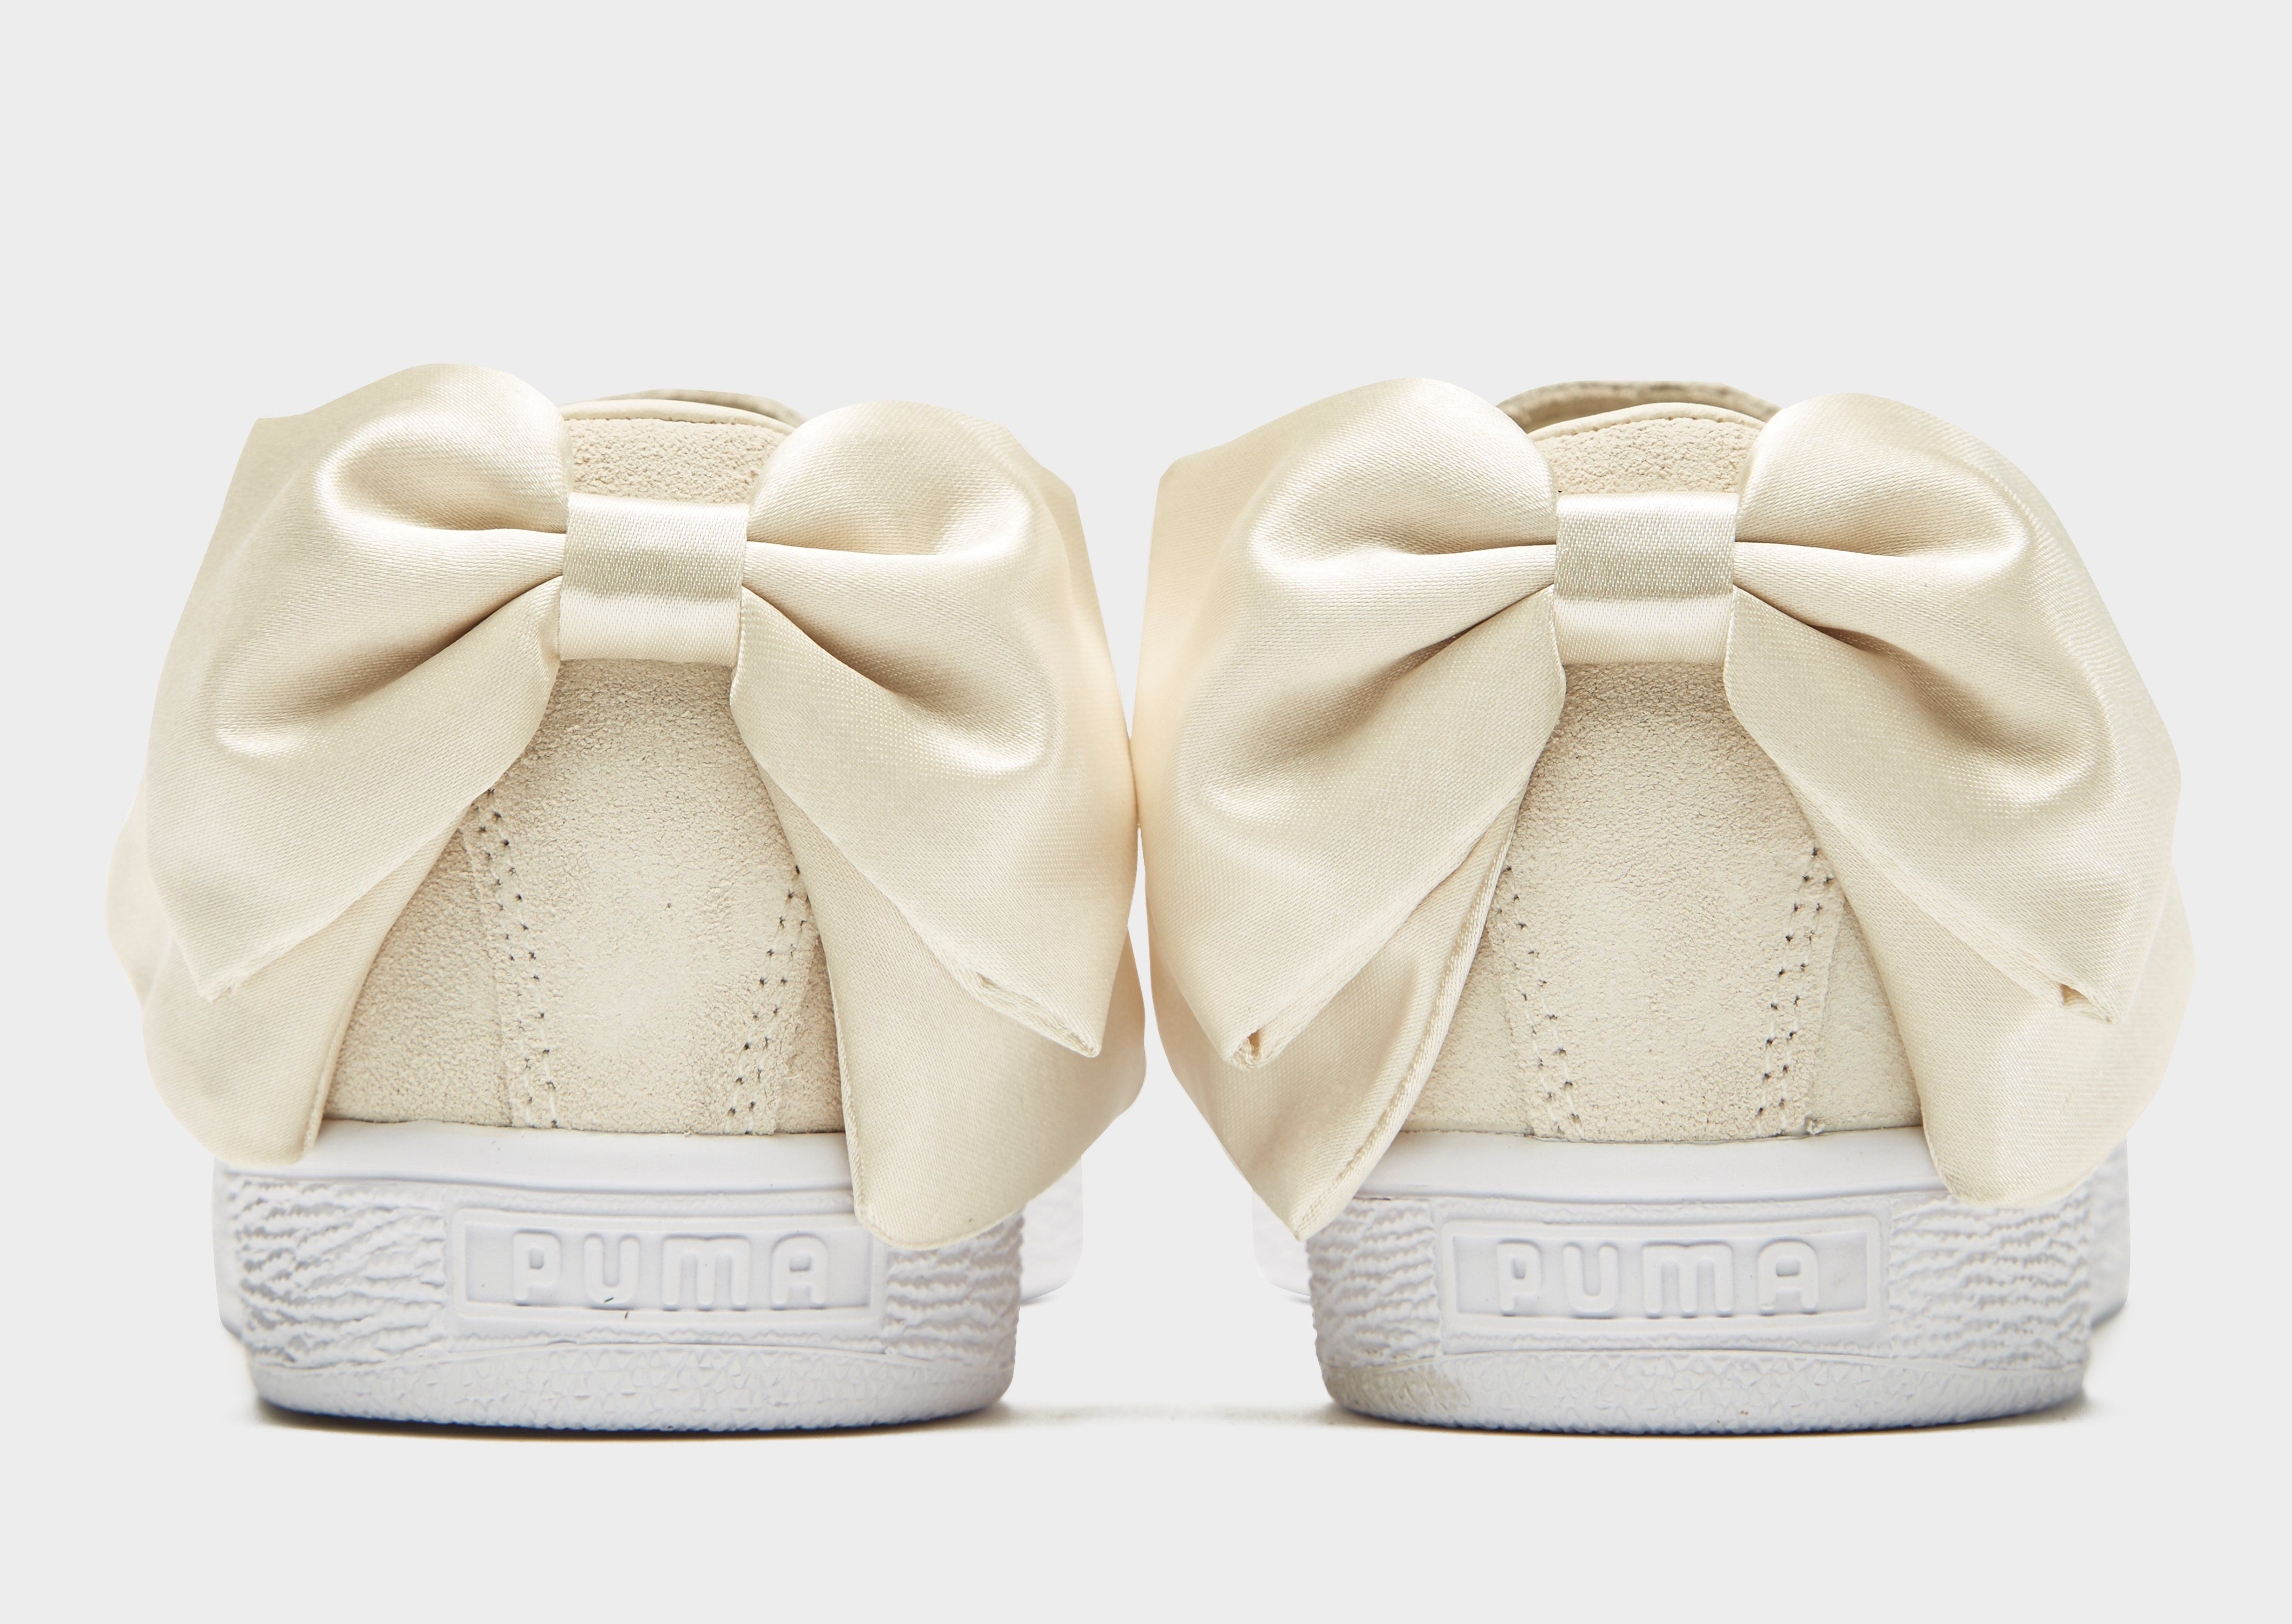 PUMA Suede Bow Women's